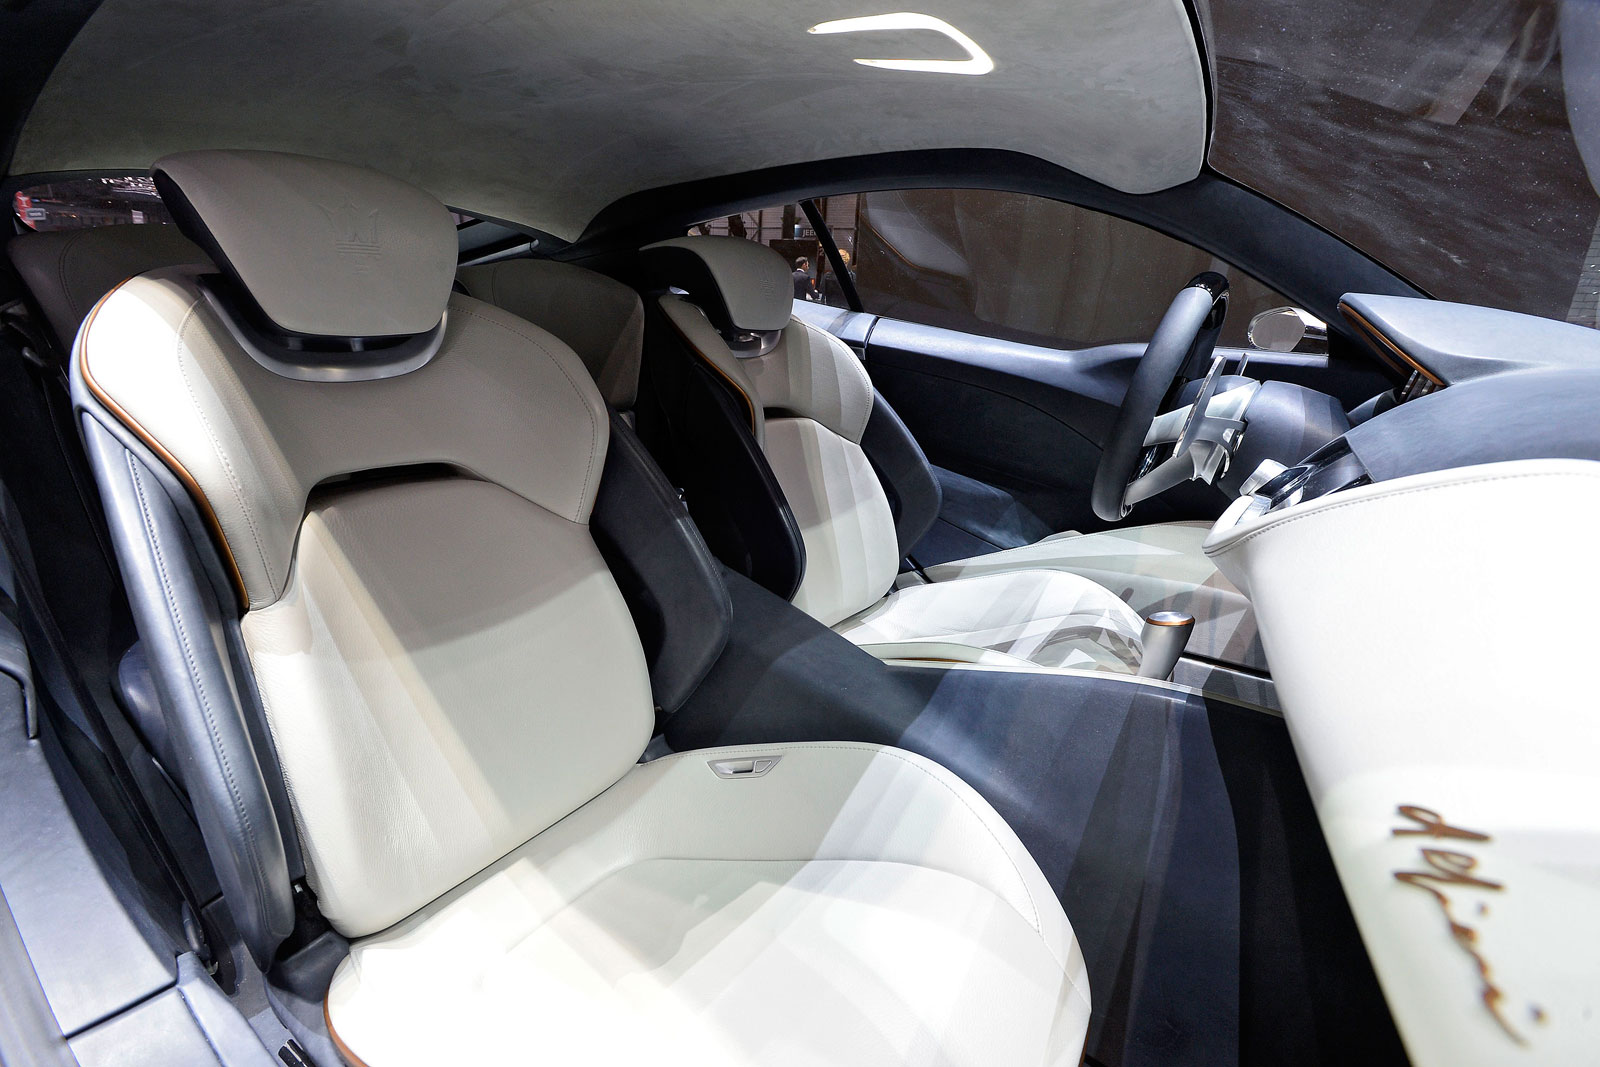 Maserati Alfieri Concept at Geneva 2014 - Interior - Car ...